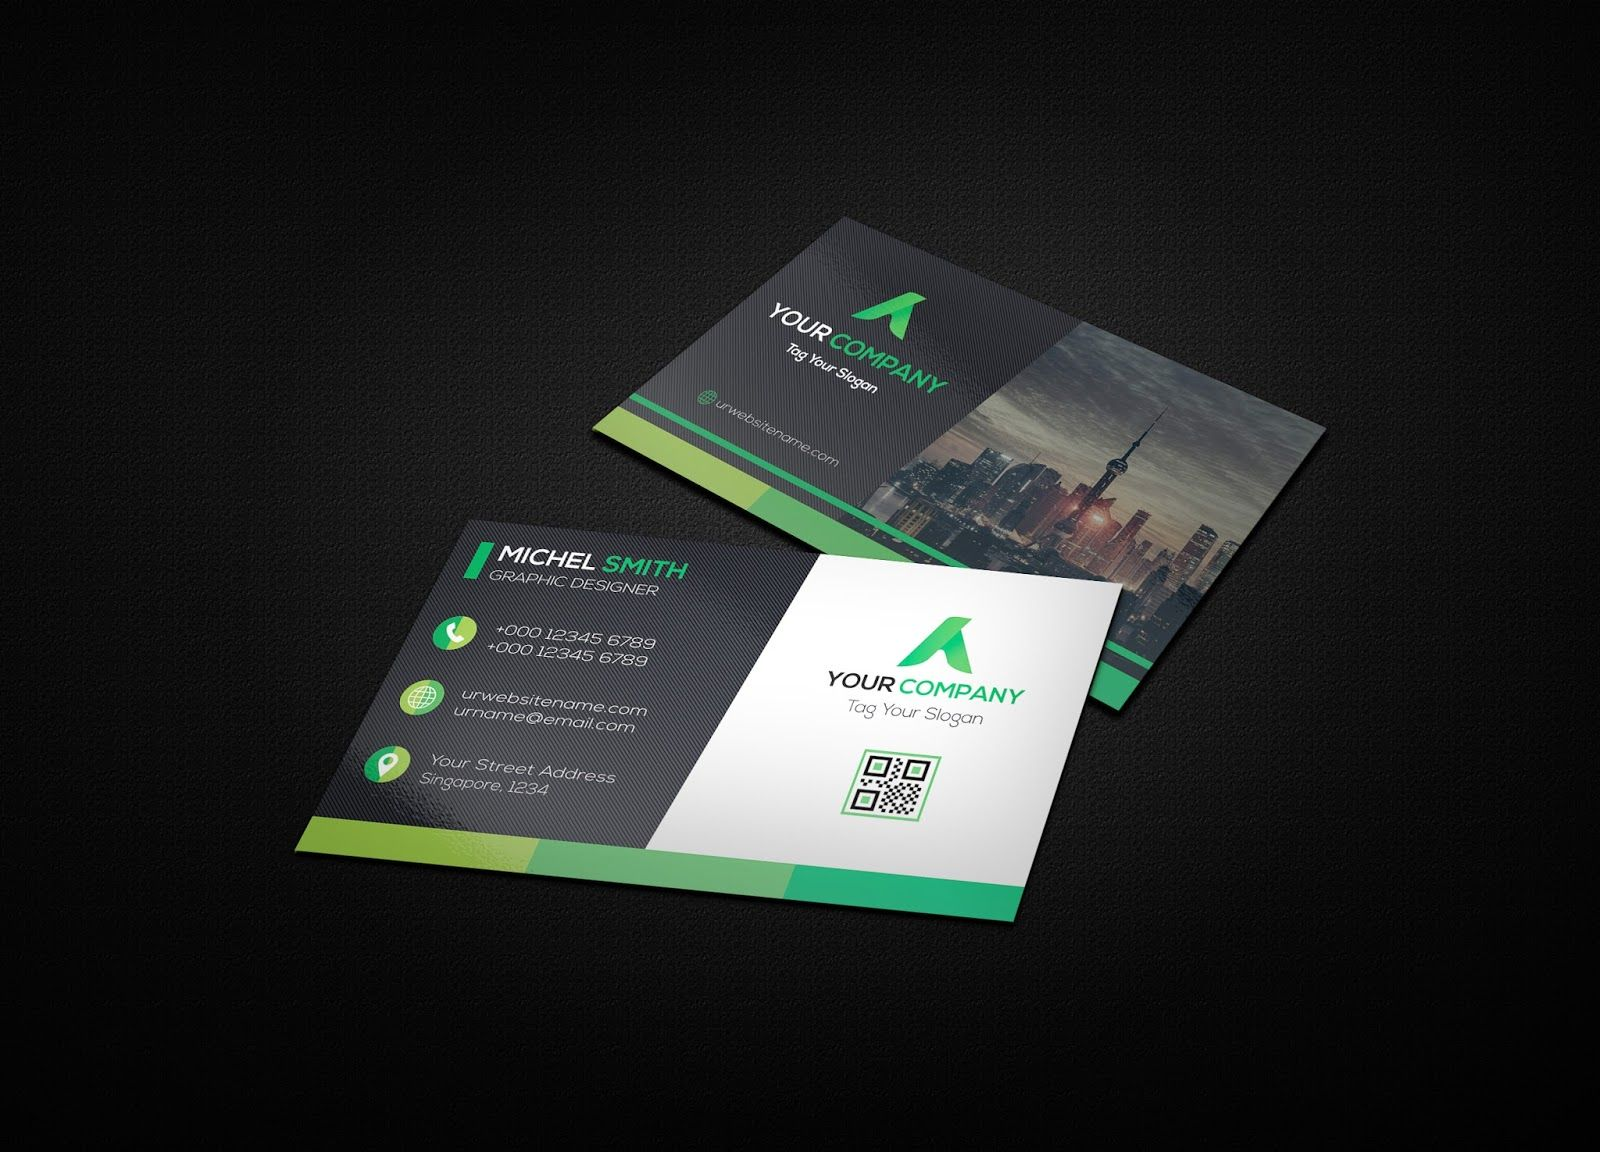 Card Mockup High Quality 50+ Best Free High-quality Psd Business Card Mockups | Top